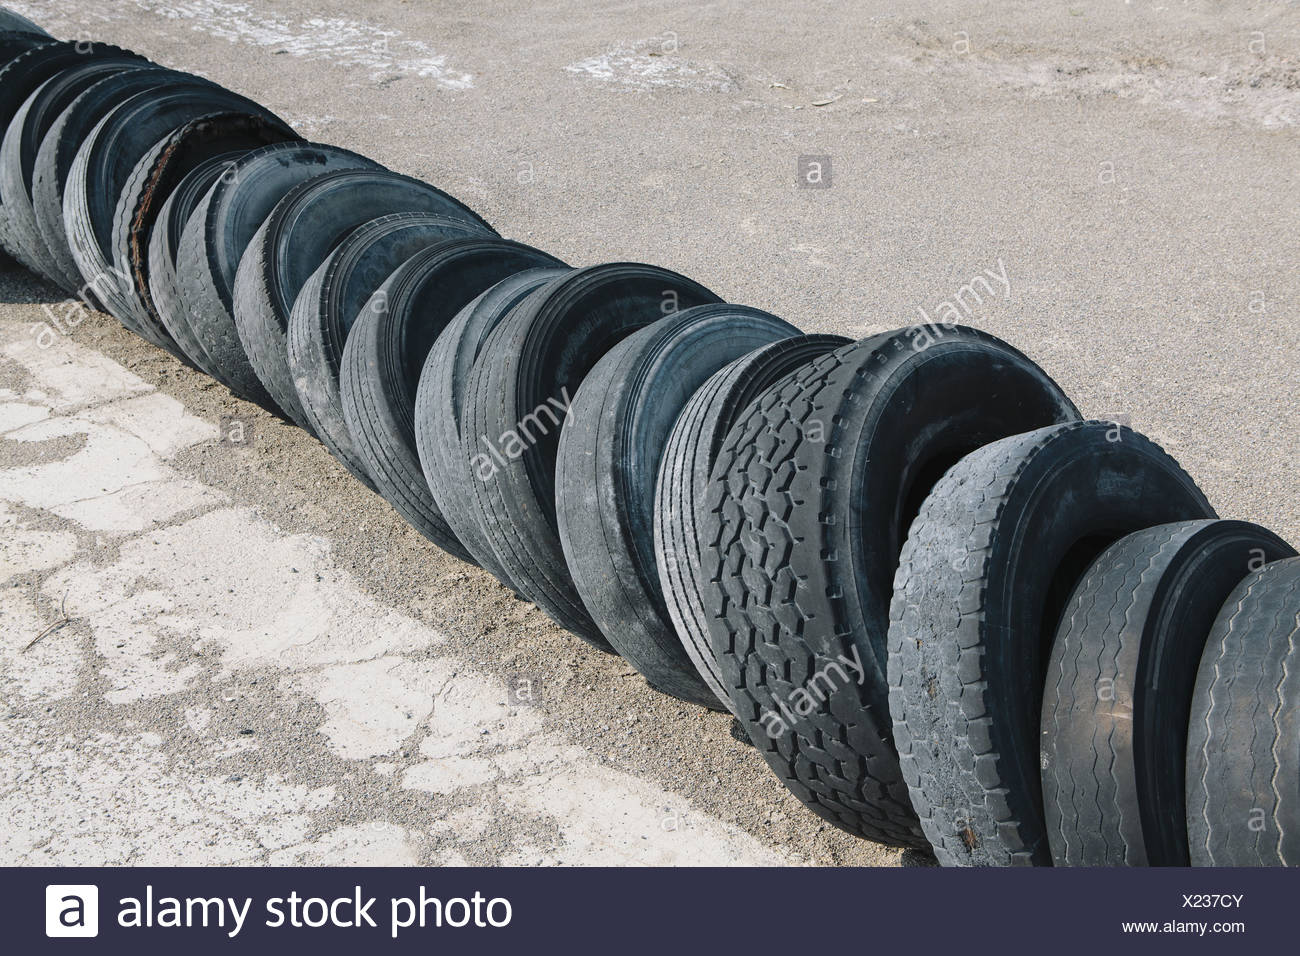 Utah USA Row of discarded tires - Stock Image